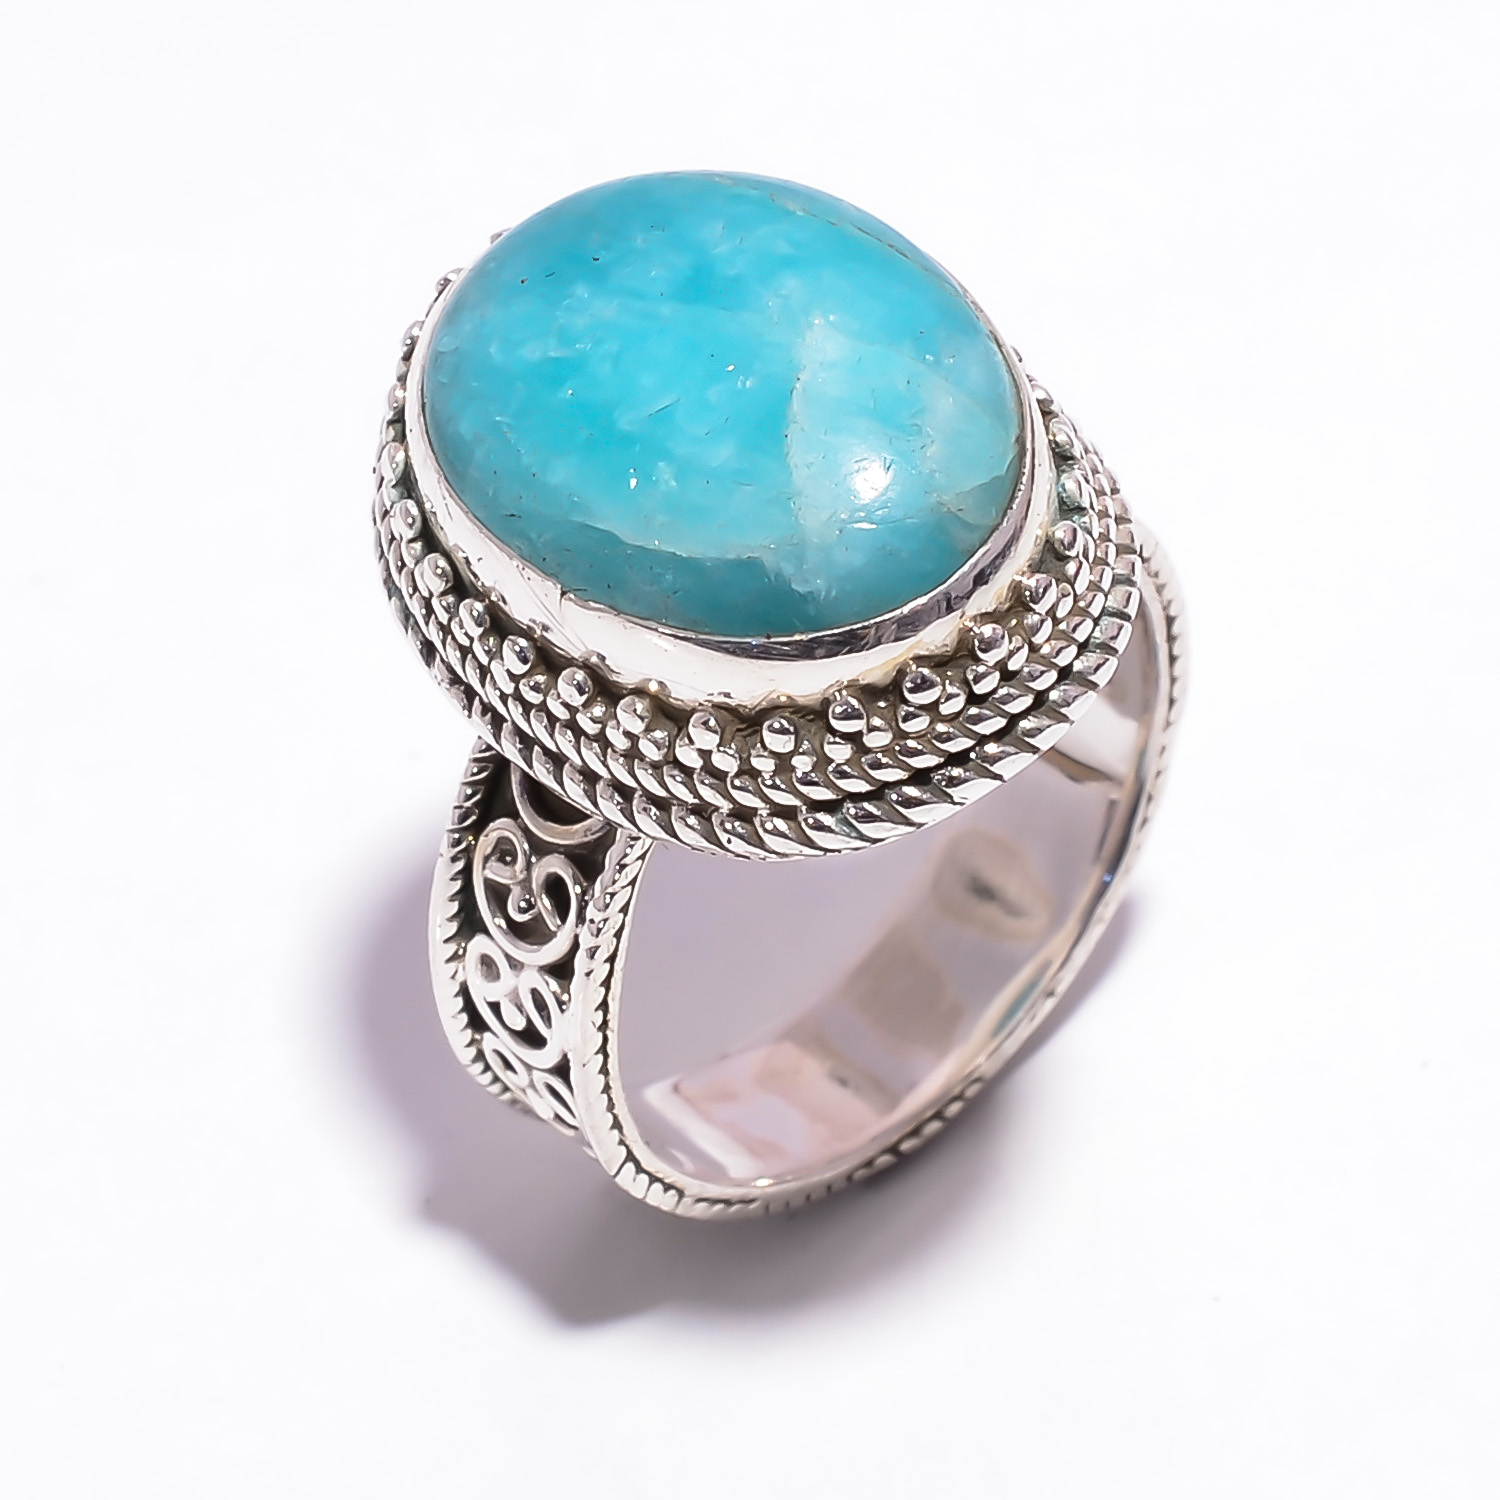 Amazonite Gemstone 925 Sterling Silver Ring Size US 7